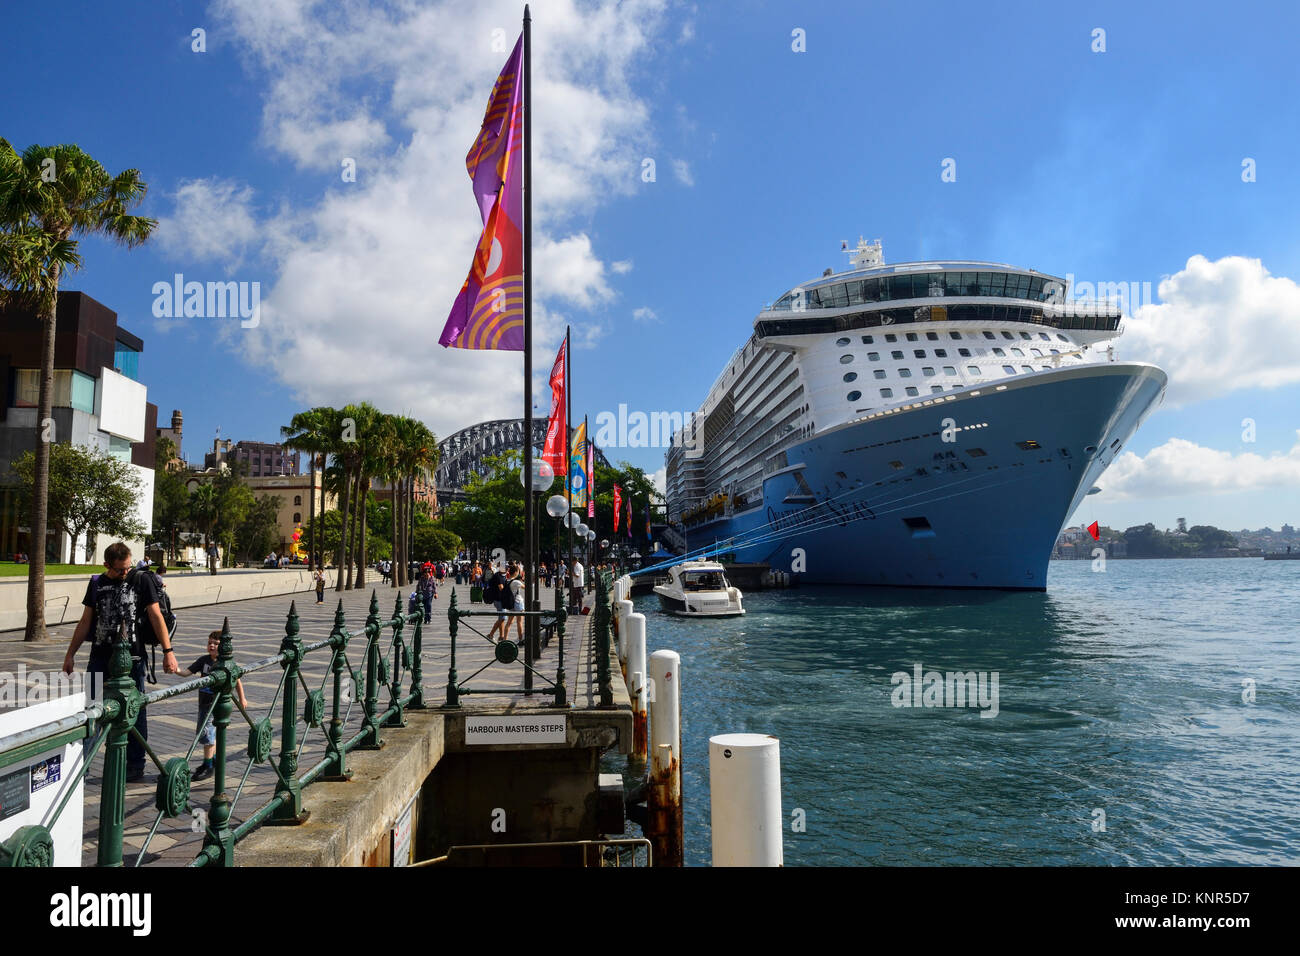 Cruise ship berthed at Overseas Passenger Terminal on Circular Quay, Sydney, New South Wales, Australia - Stock Image